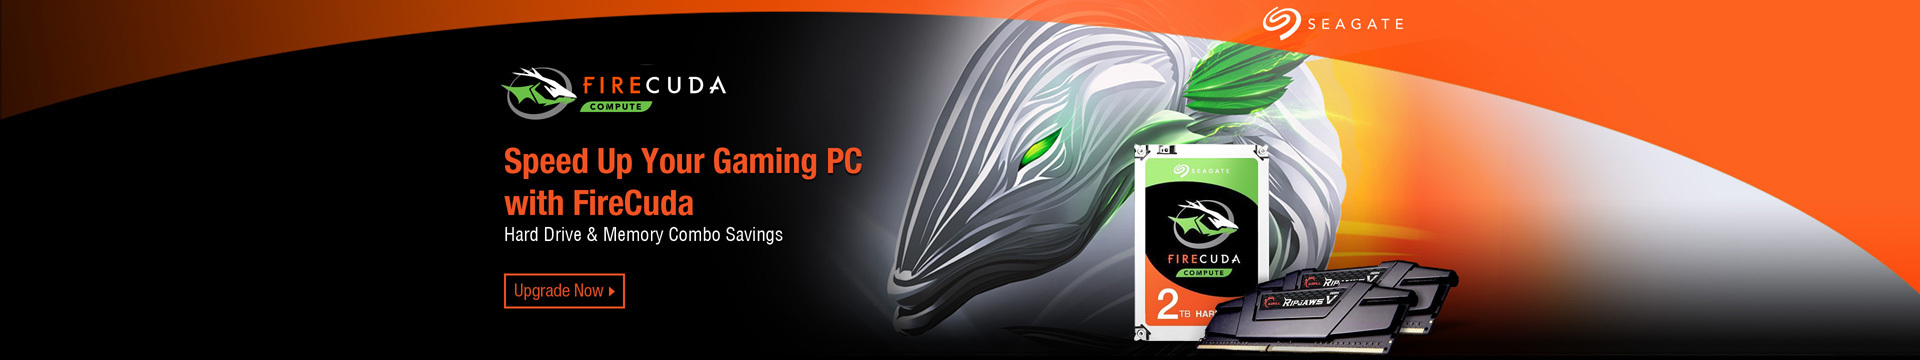 Seagate FireCuda. Speed Up Your Gaming PC with FireCuda